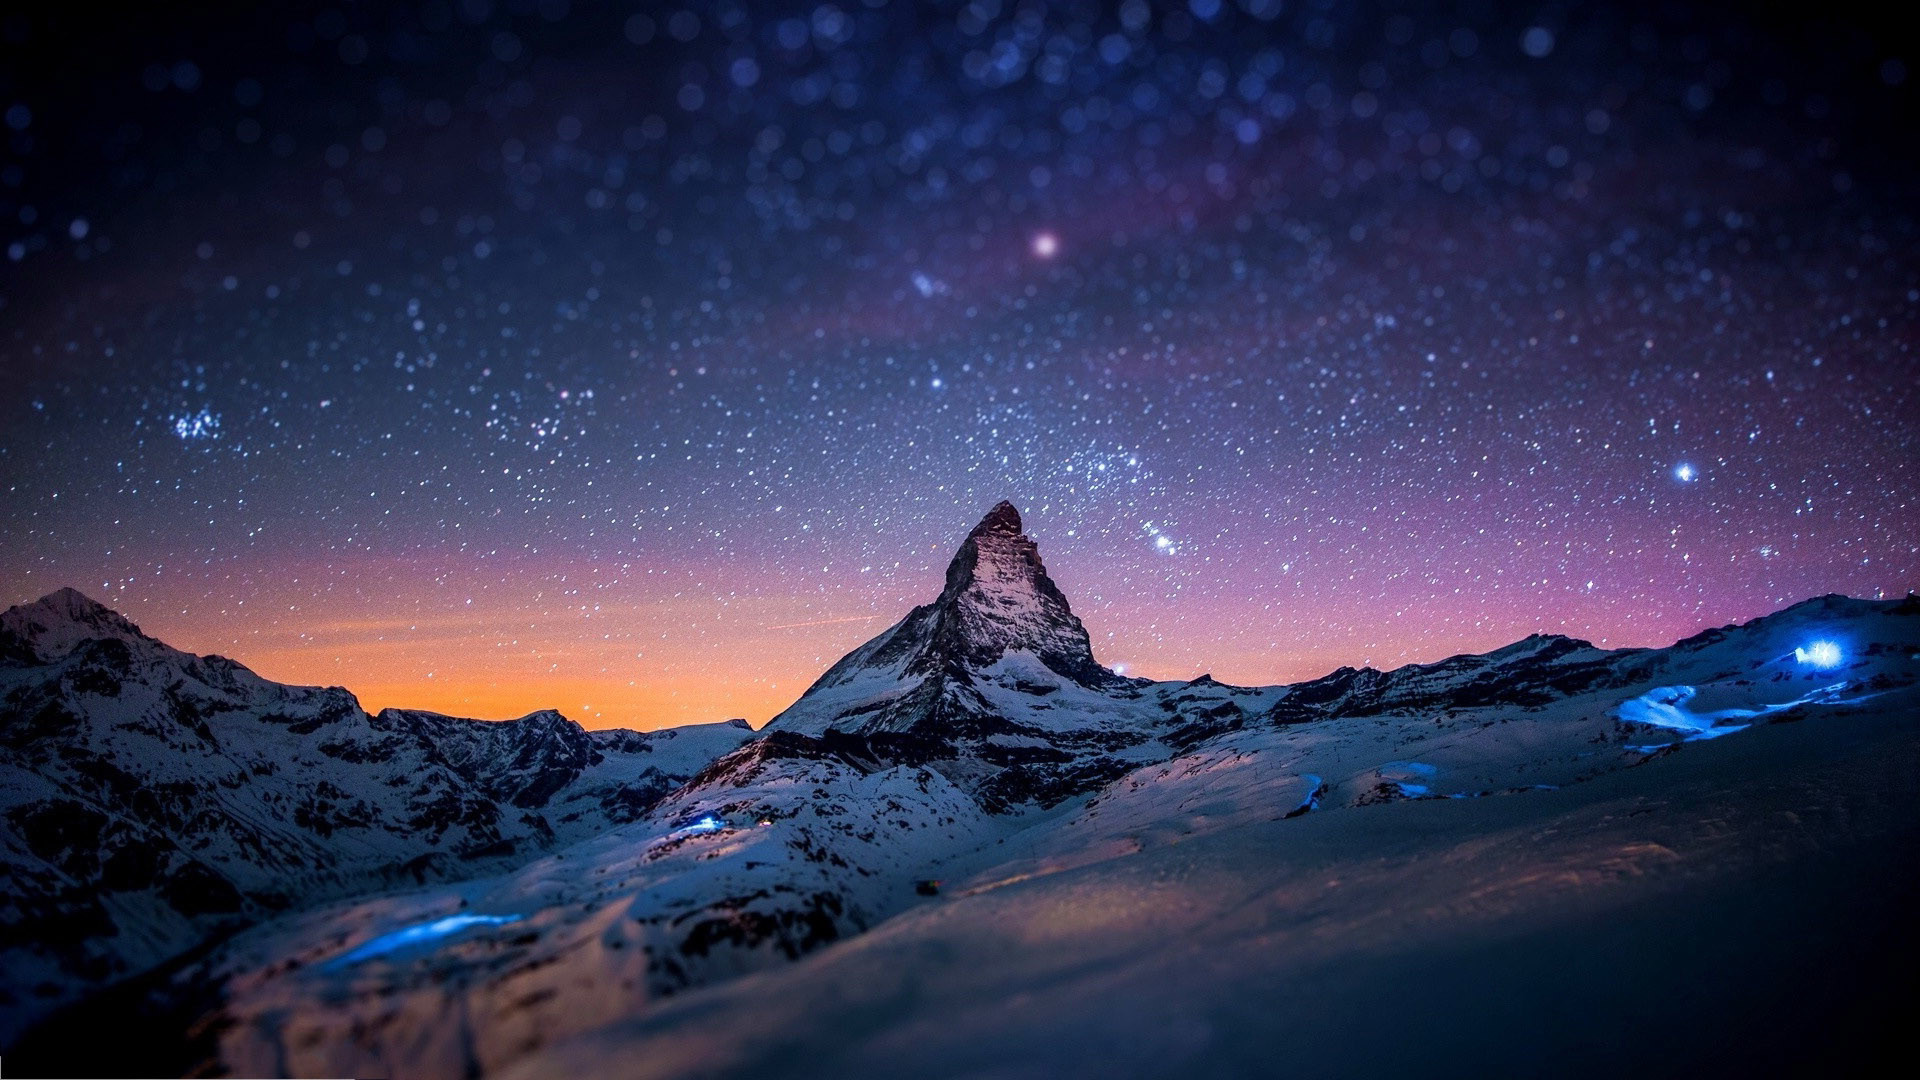 Mountain Night Wallpaper 64 images 1920x1080